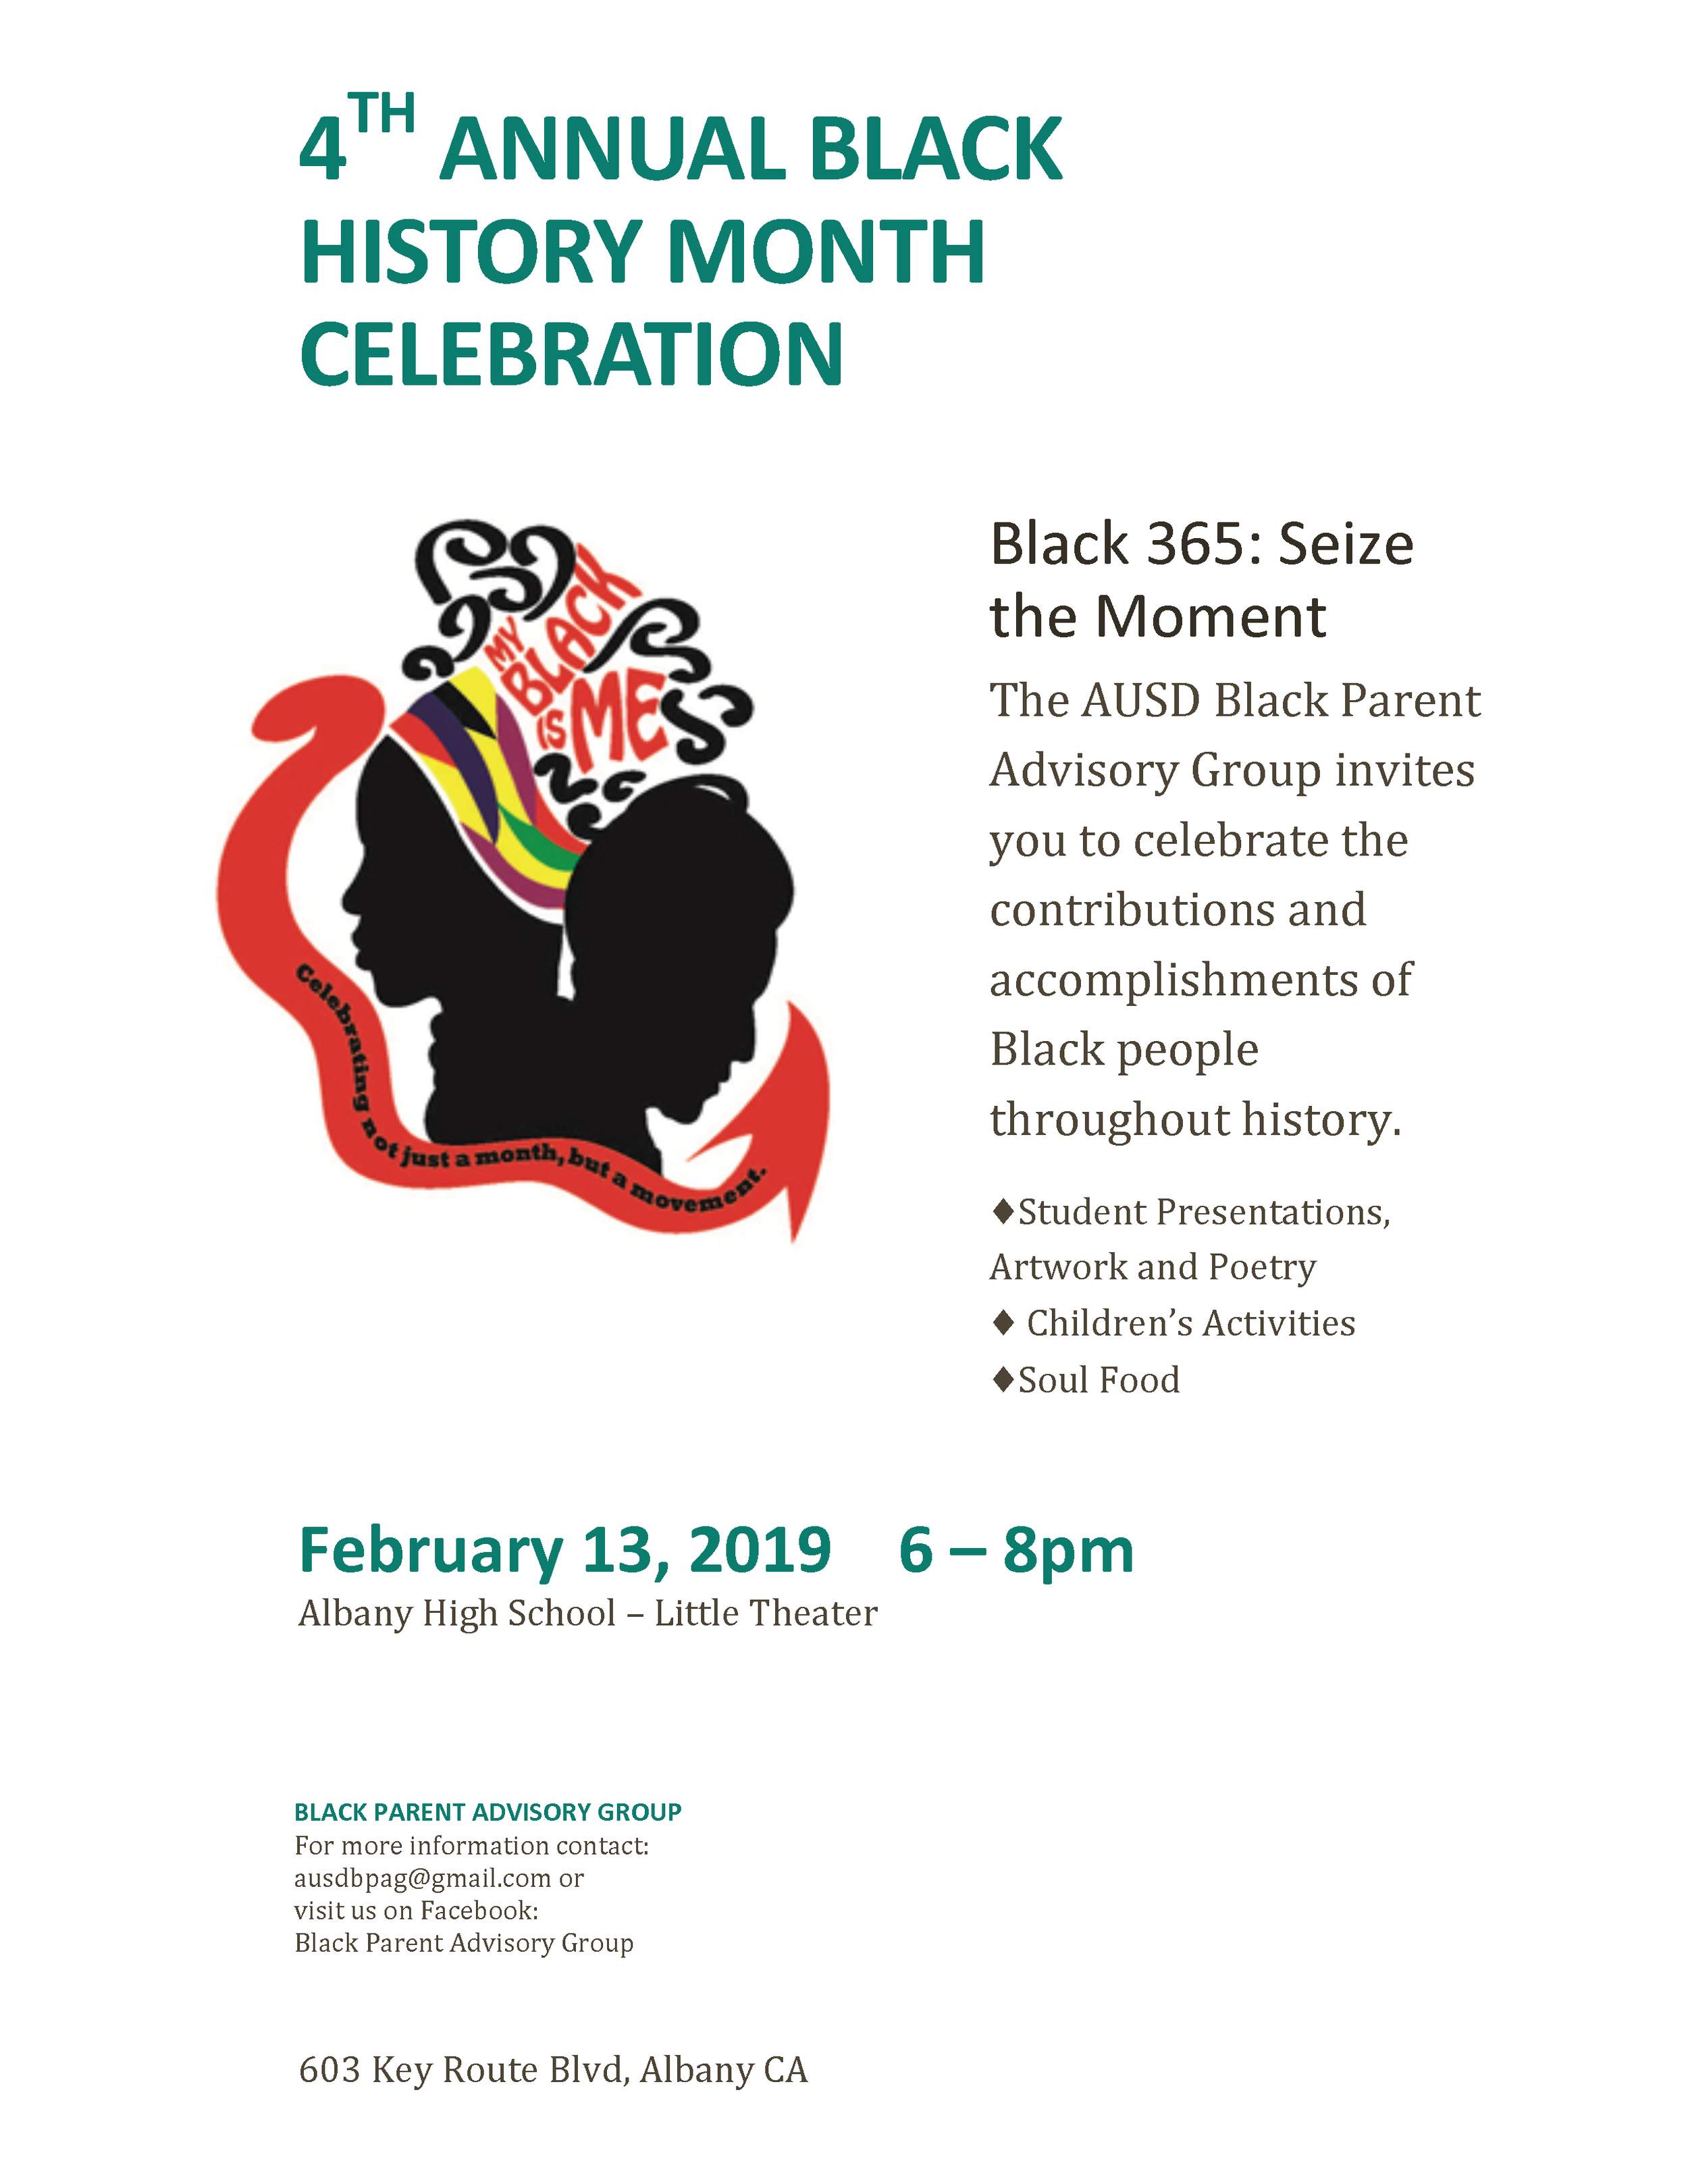 4th Annual Black History Month Celebration.png